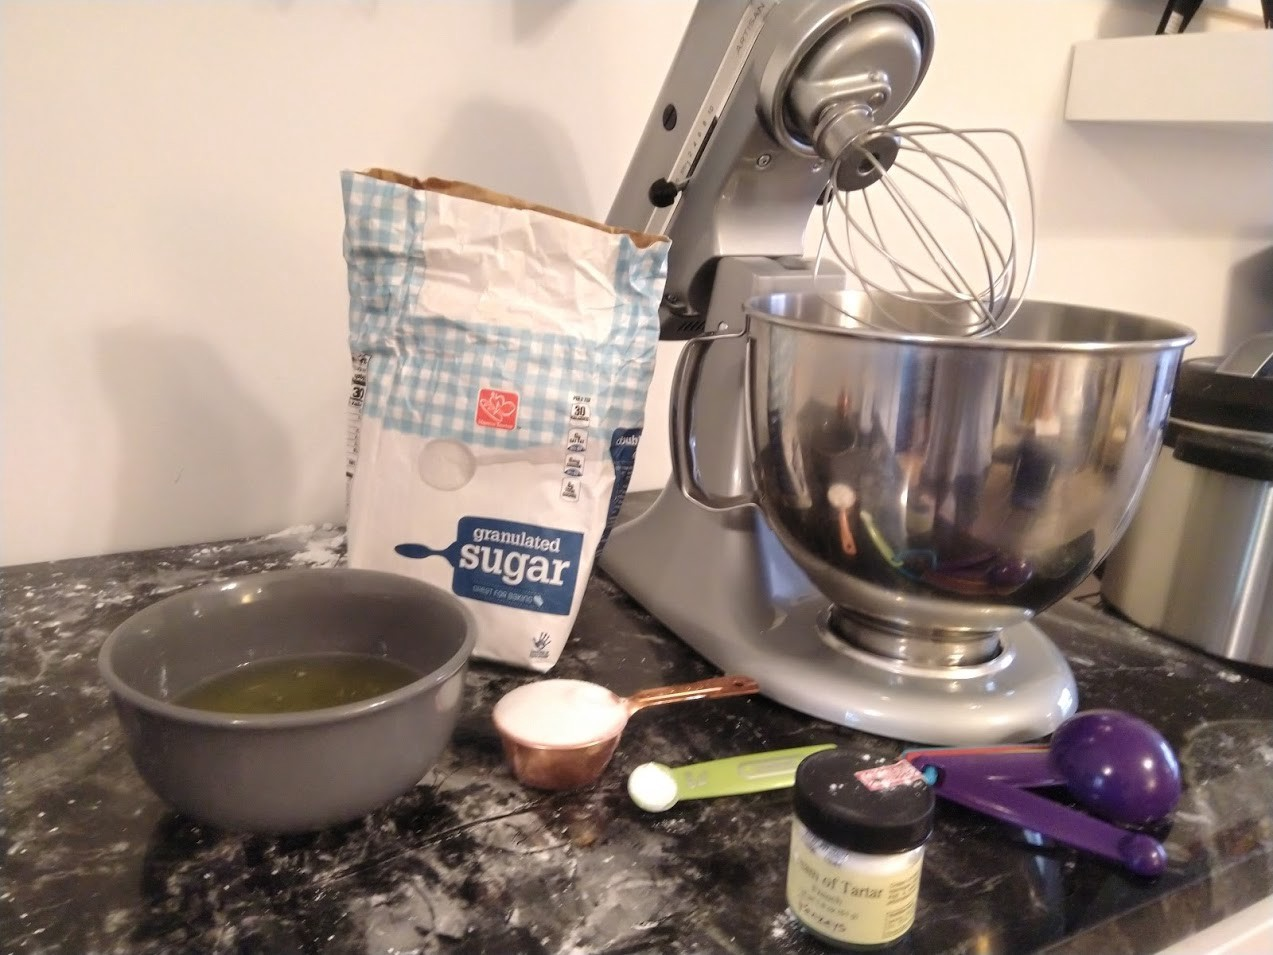 Ingredients for the meringue: egg whites, granulated sugar, cream of tartar and an electric stand mixer